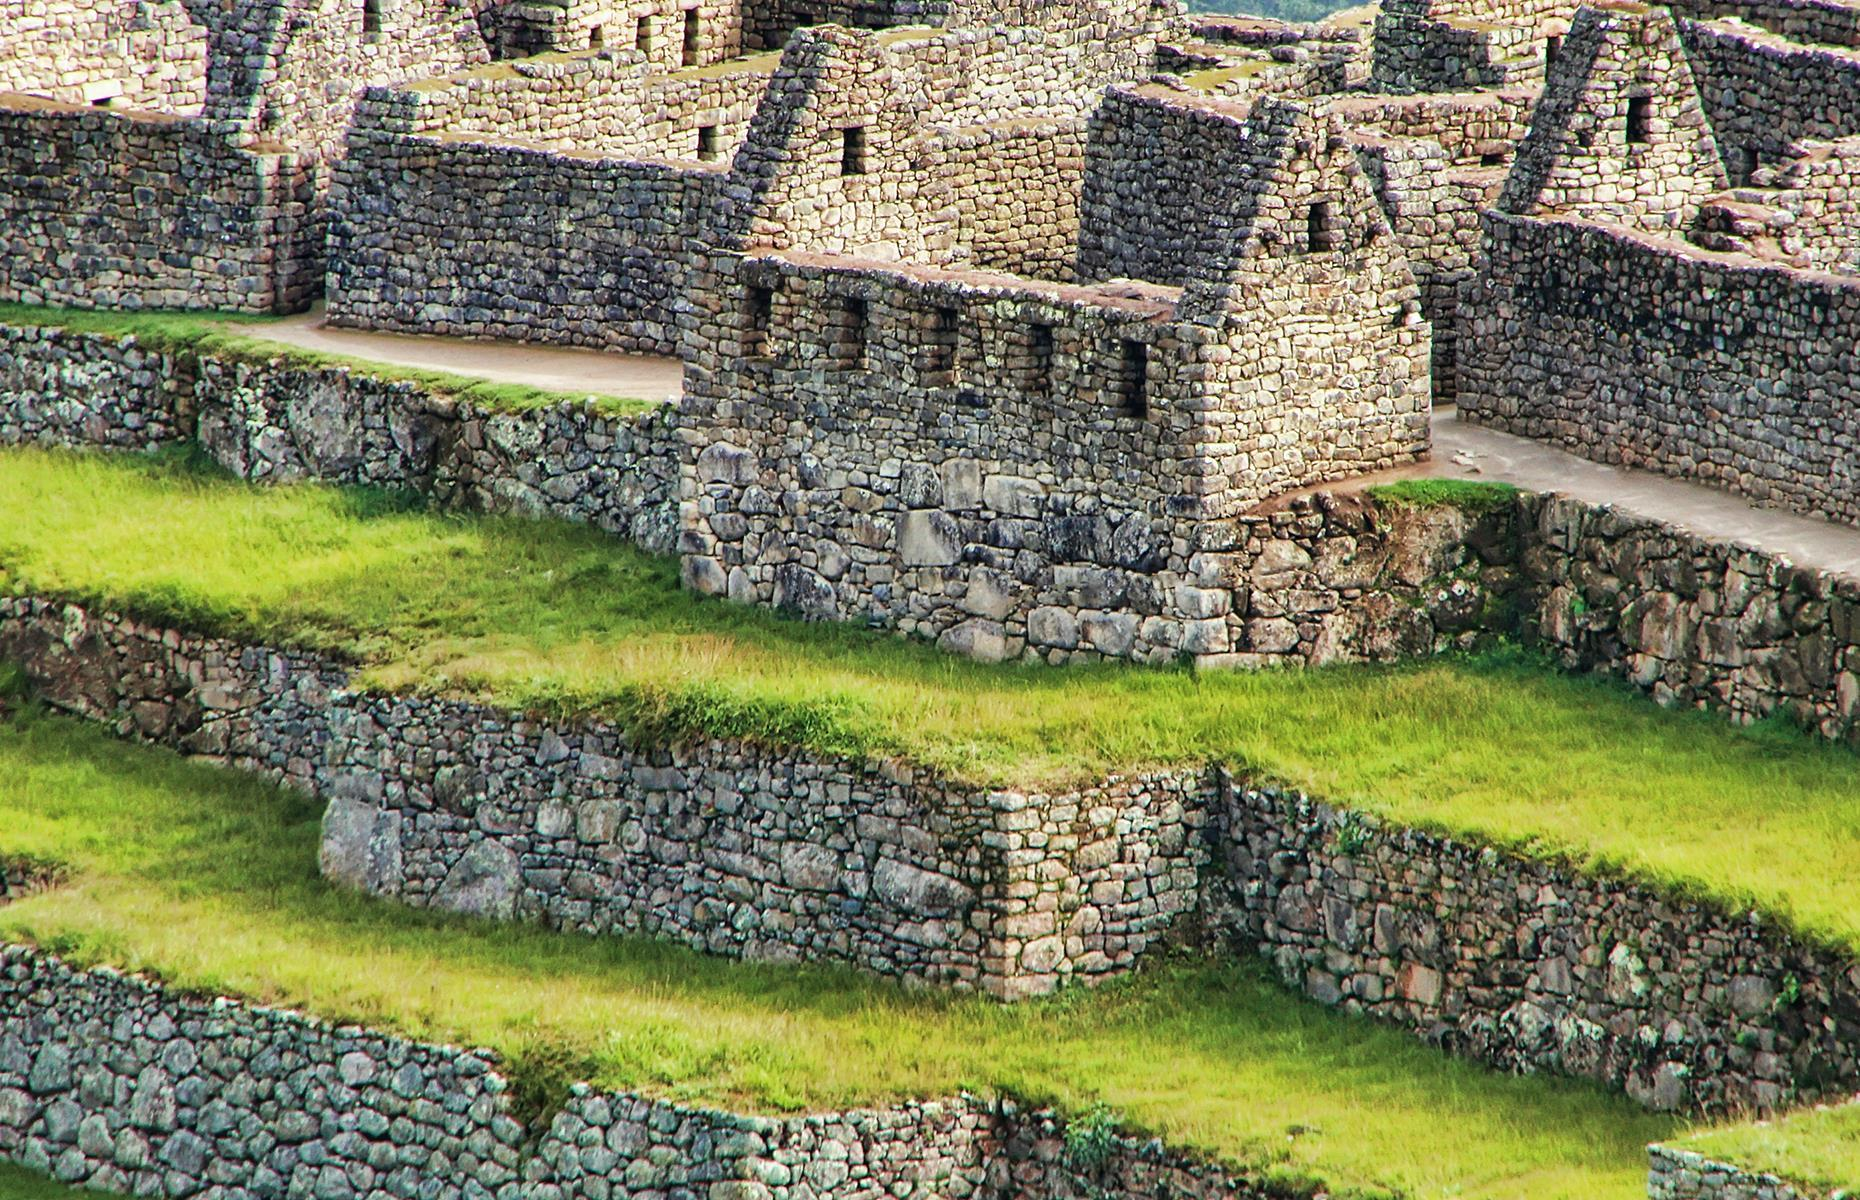 Slide 26 of 53: Located high in the mountains of Peru, this ancient city was an Inca emperor's estate. It was recognized as one of the new seven wonders of the world in 2007 too.